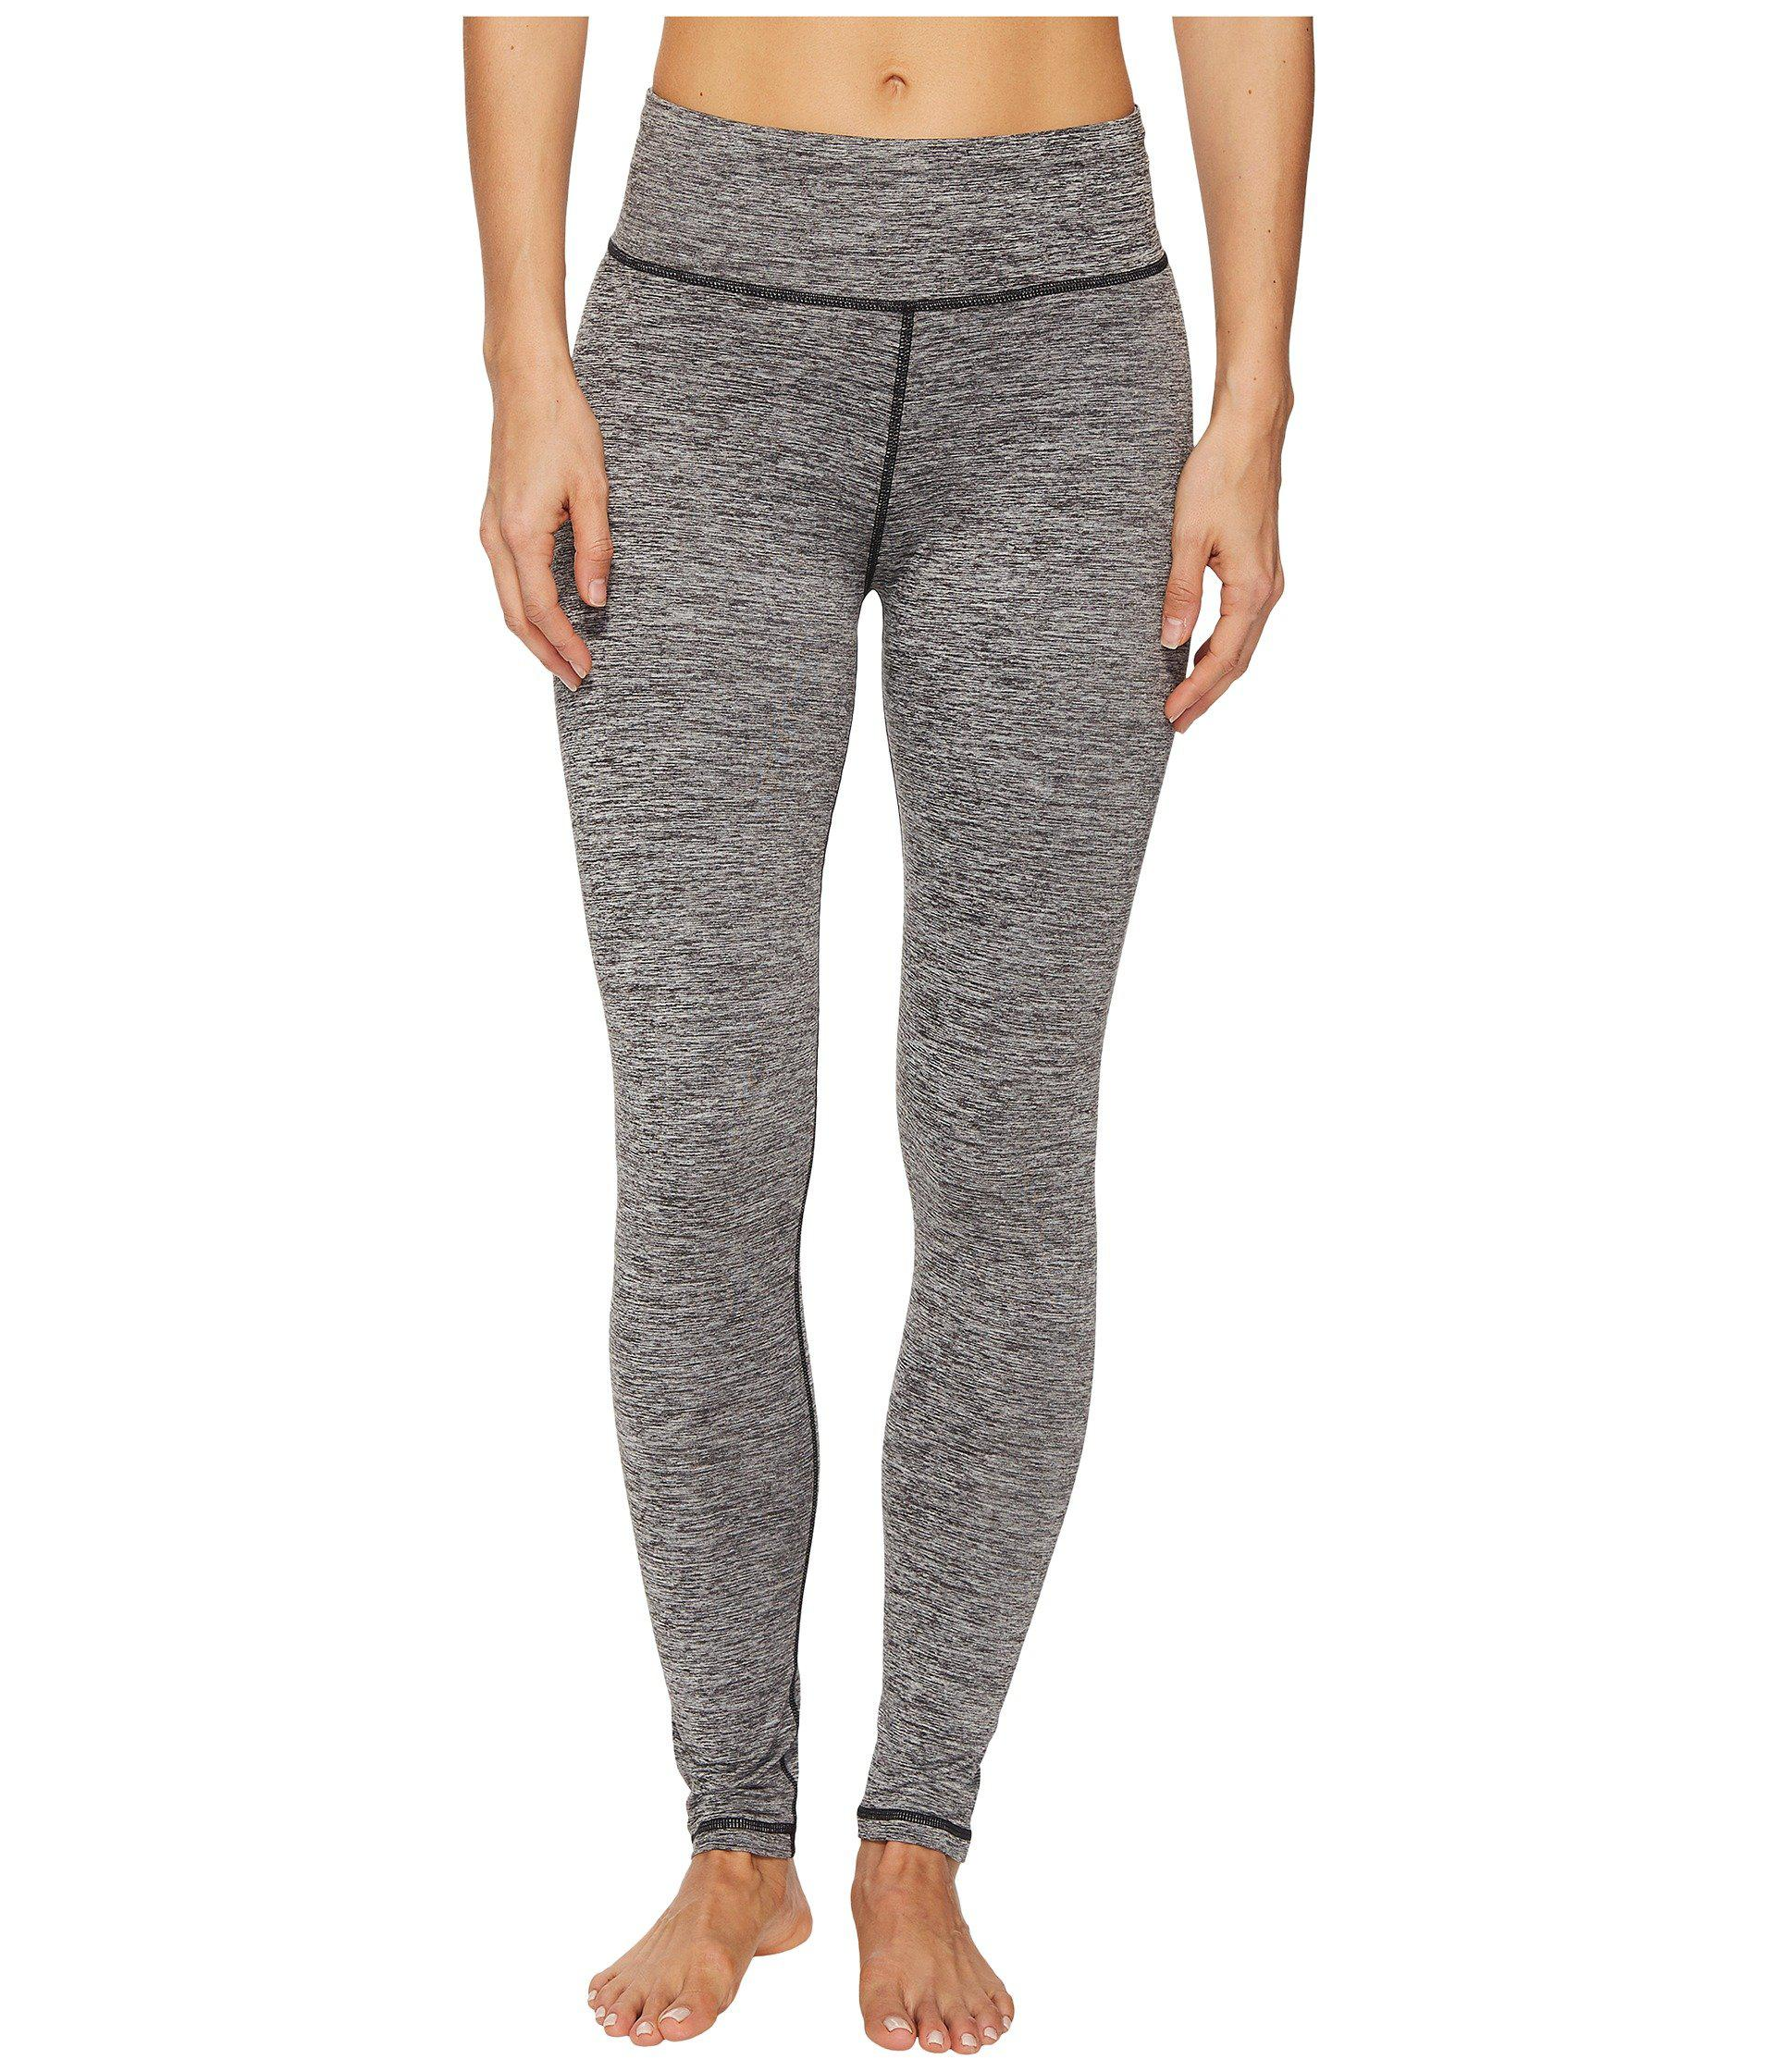 a188524a5c95 Lyst - adidas Performer High-rise Brushed Cozy Tights in Gray